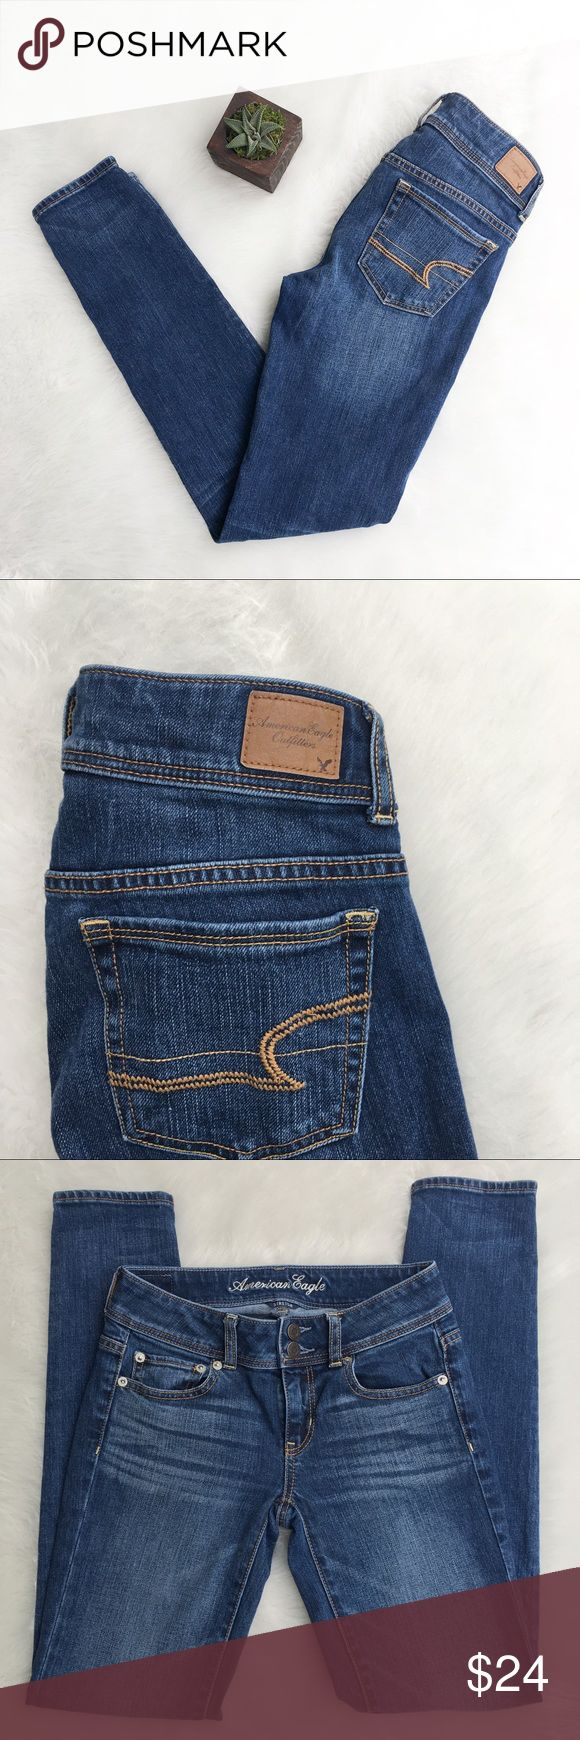 🆕American Jean Skinny Jeans American Eagle skinny jeans. Size 00. Apporoximate measurements are 27' waist & 30' inseam. These have the double button with zipper. EUC. ❌No trades ❌ Modeling ❌No PayPal or off Posh transactions ❤️ I 💕Bundles ❤️Reasonable Offers PLEASE ❤️ Bundle & SAVE❗️❗️ American Eagle Outfitters Jeans Skinny